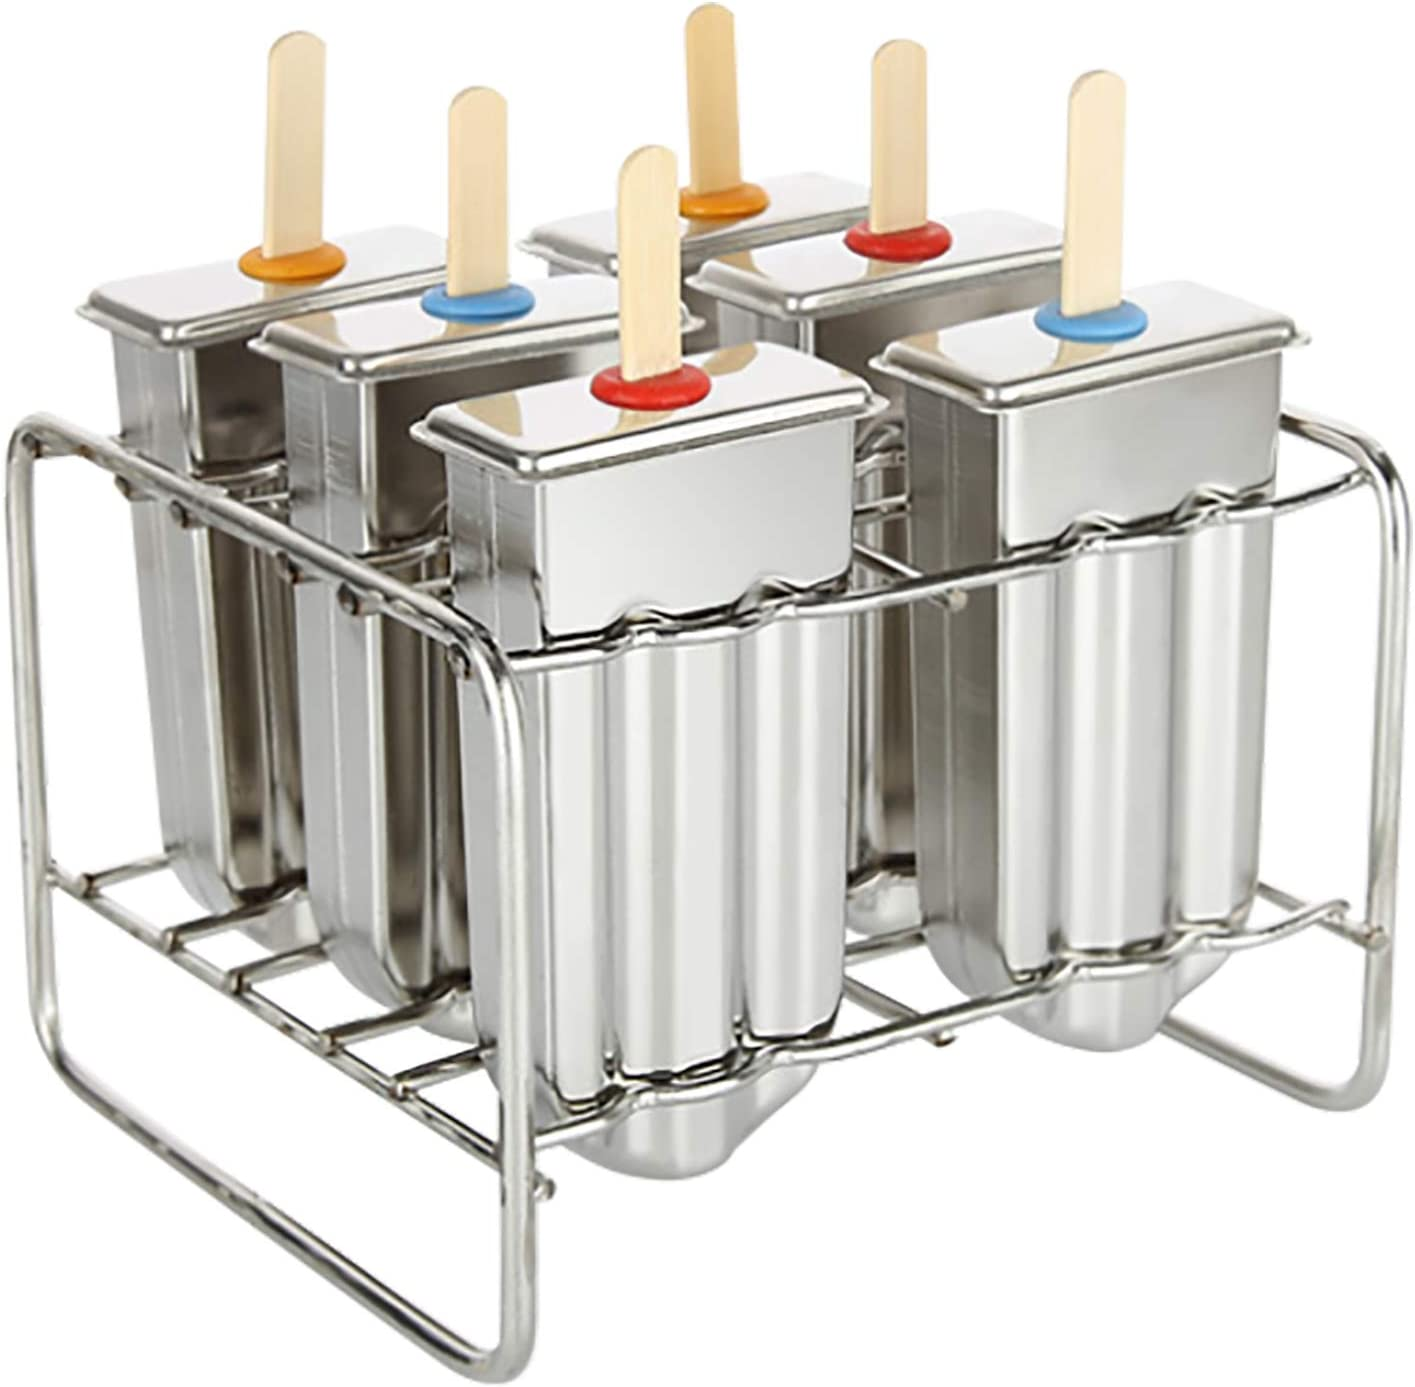 Ice Cream Stick Mold Stainless Max 78% At the price OFF Popsicle Molds Steel L Lolly